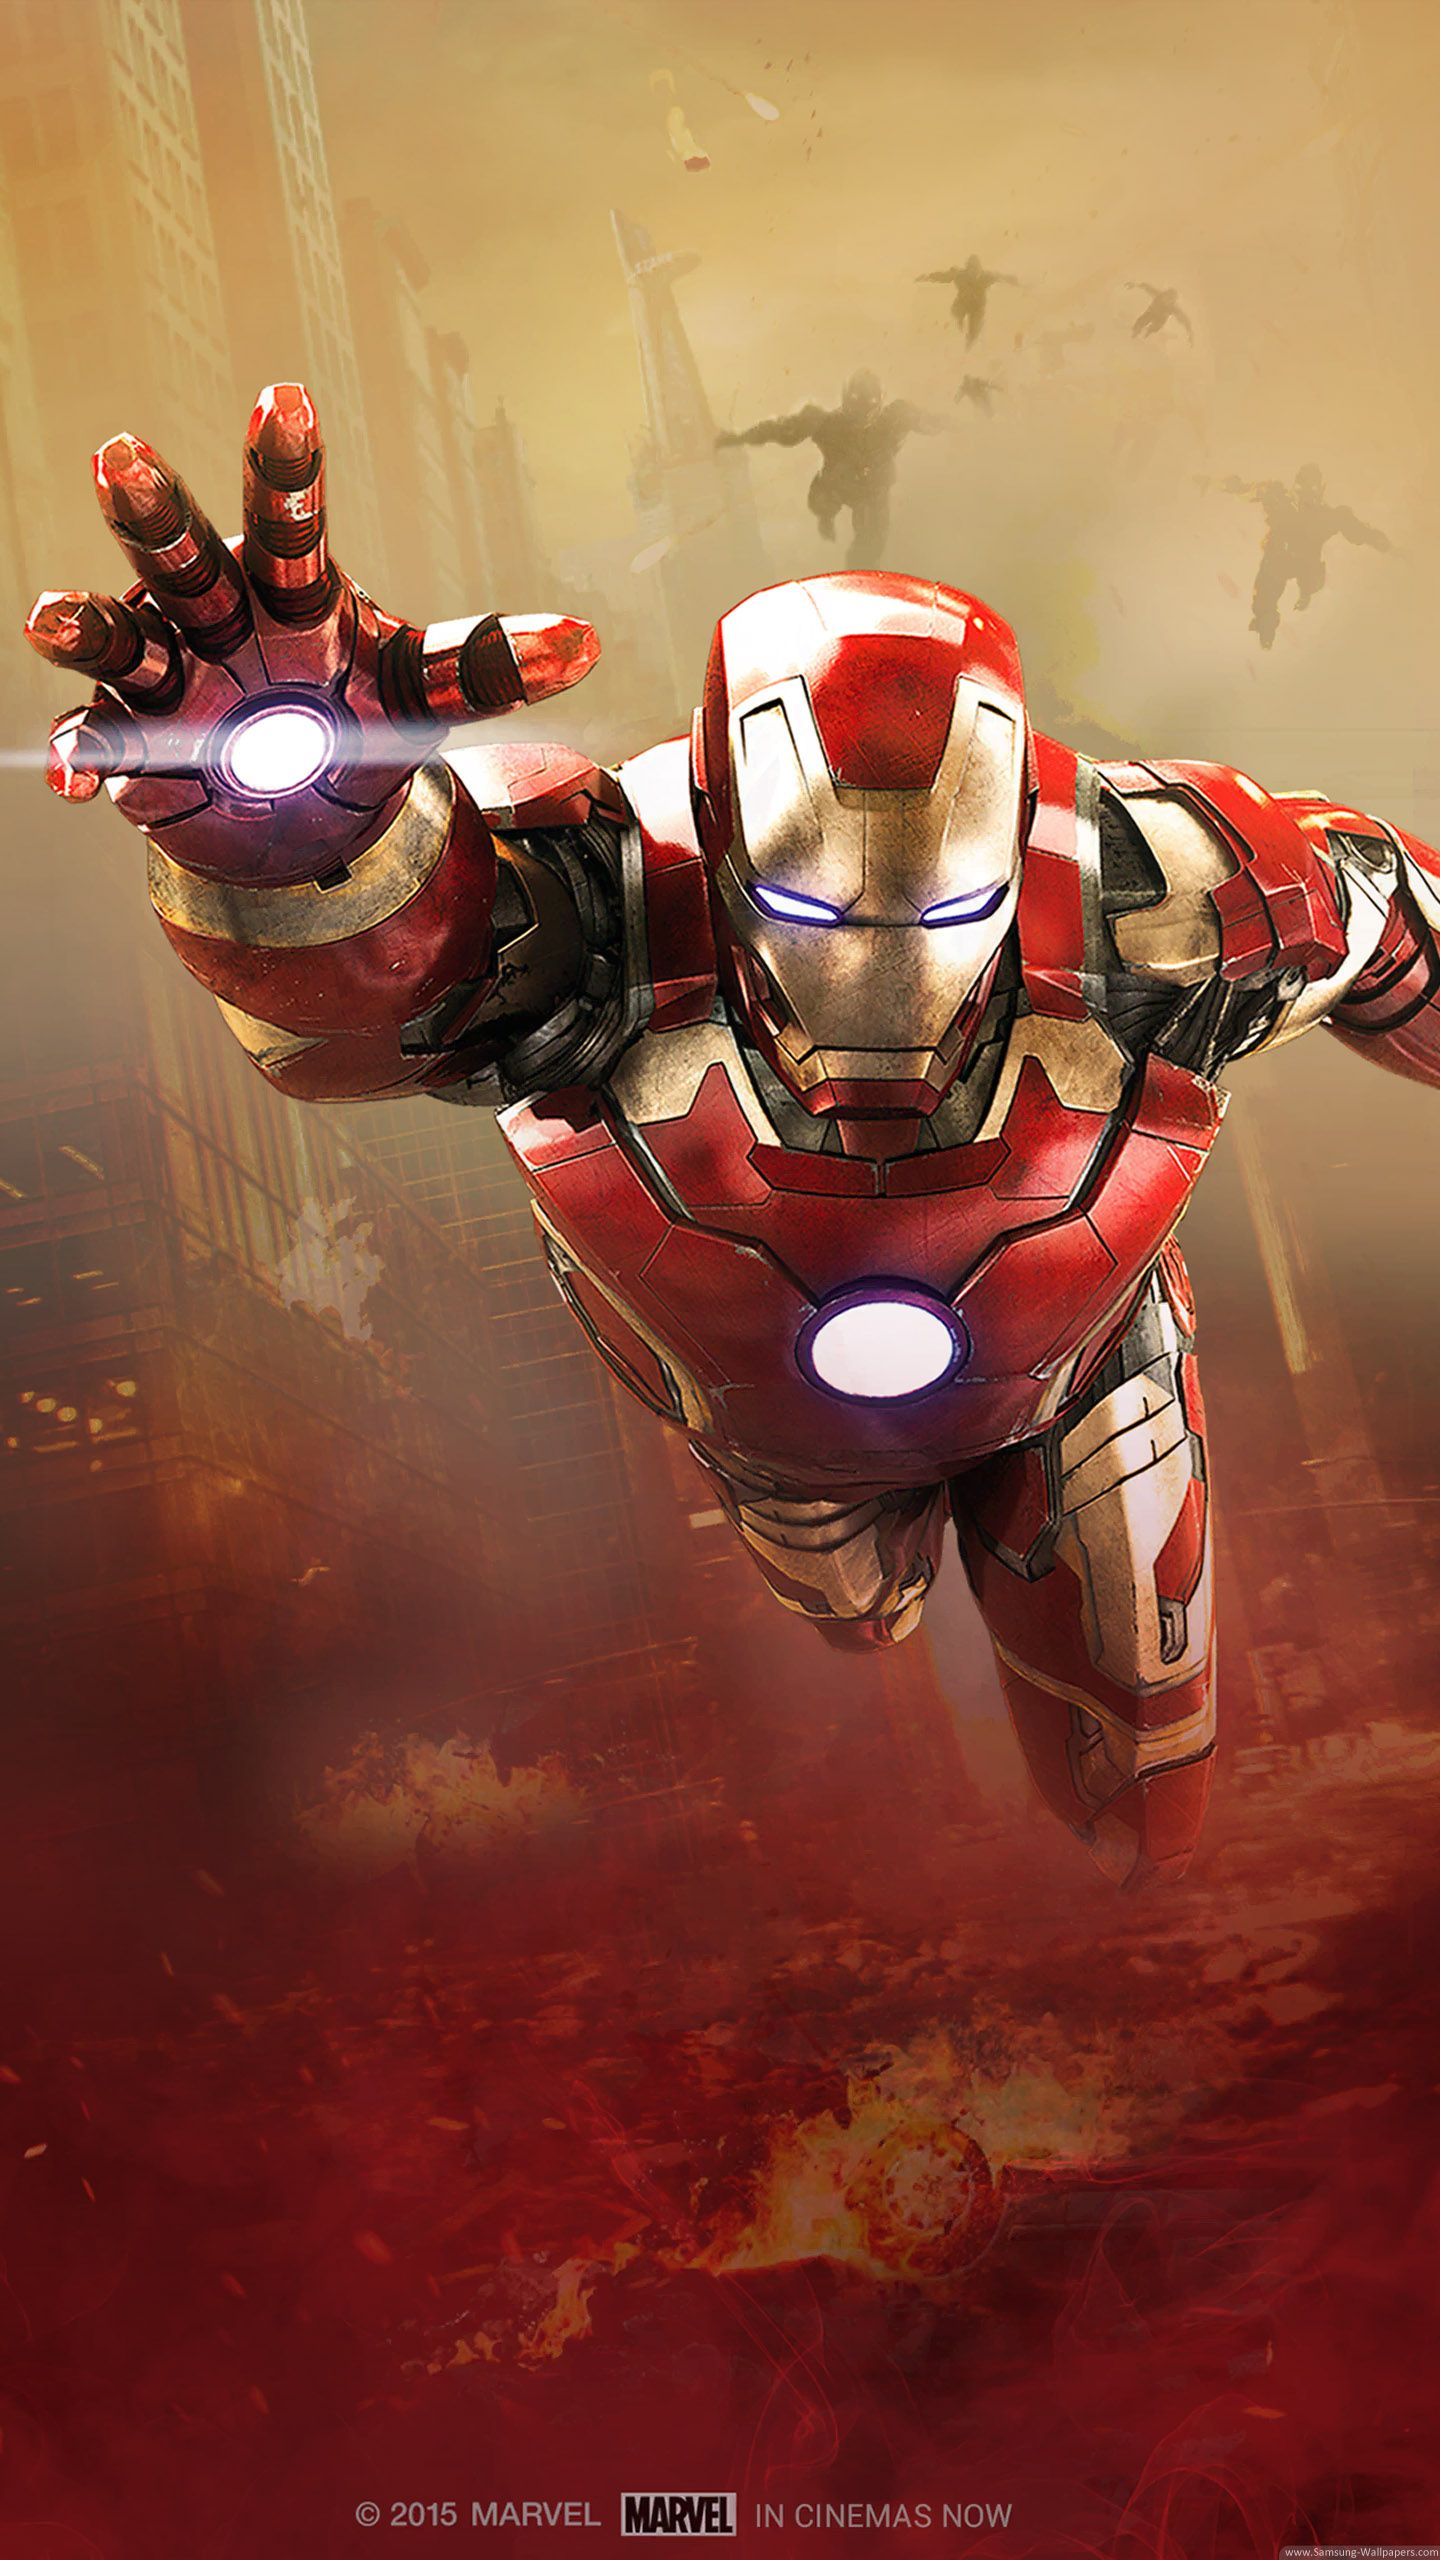 Download free iron man wallpapers for your mobile phone by